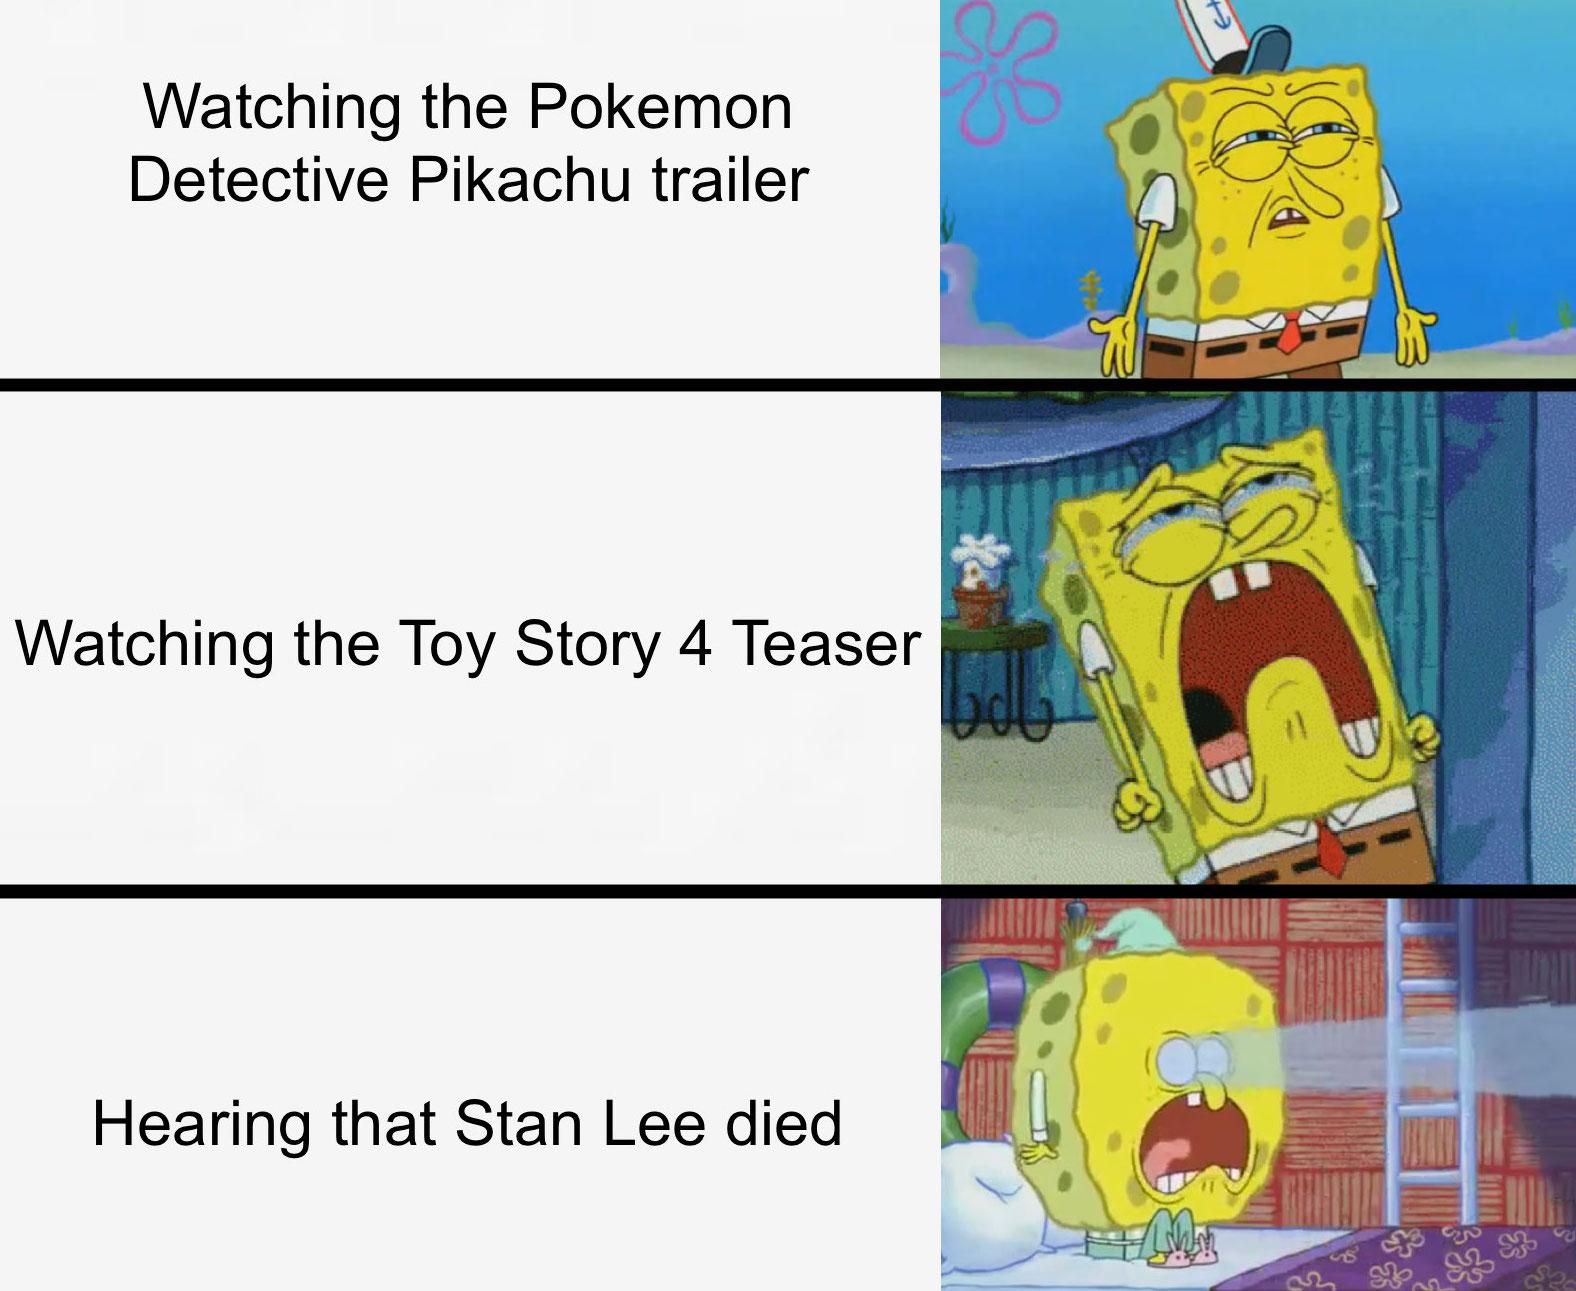 Watching the pokemon detective pikachu trailer watching the toy story 4 teaser hearing that stan lee